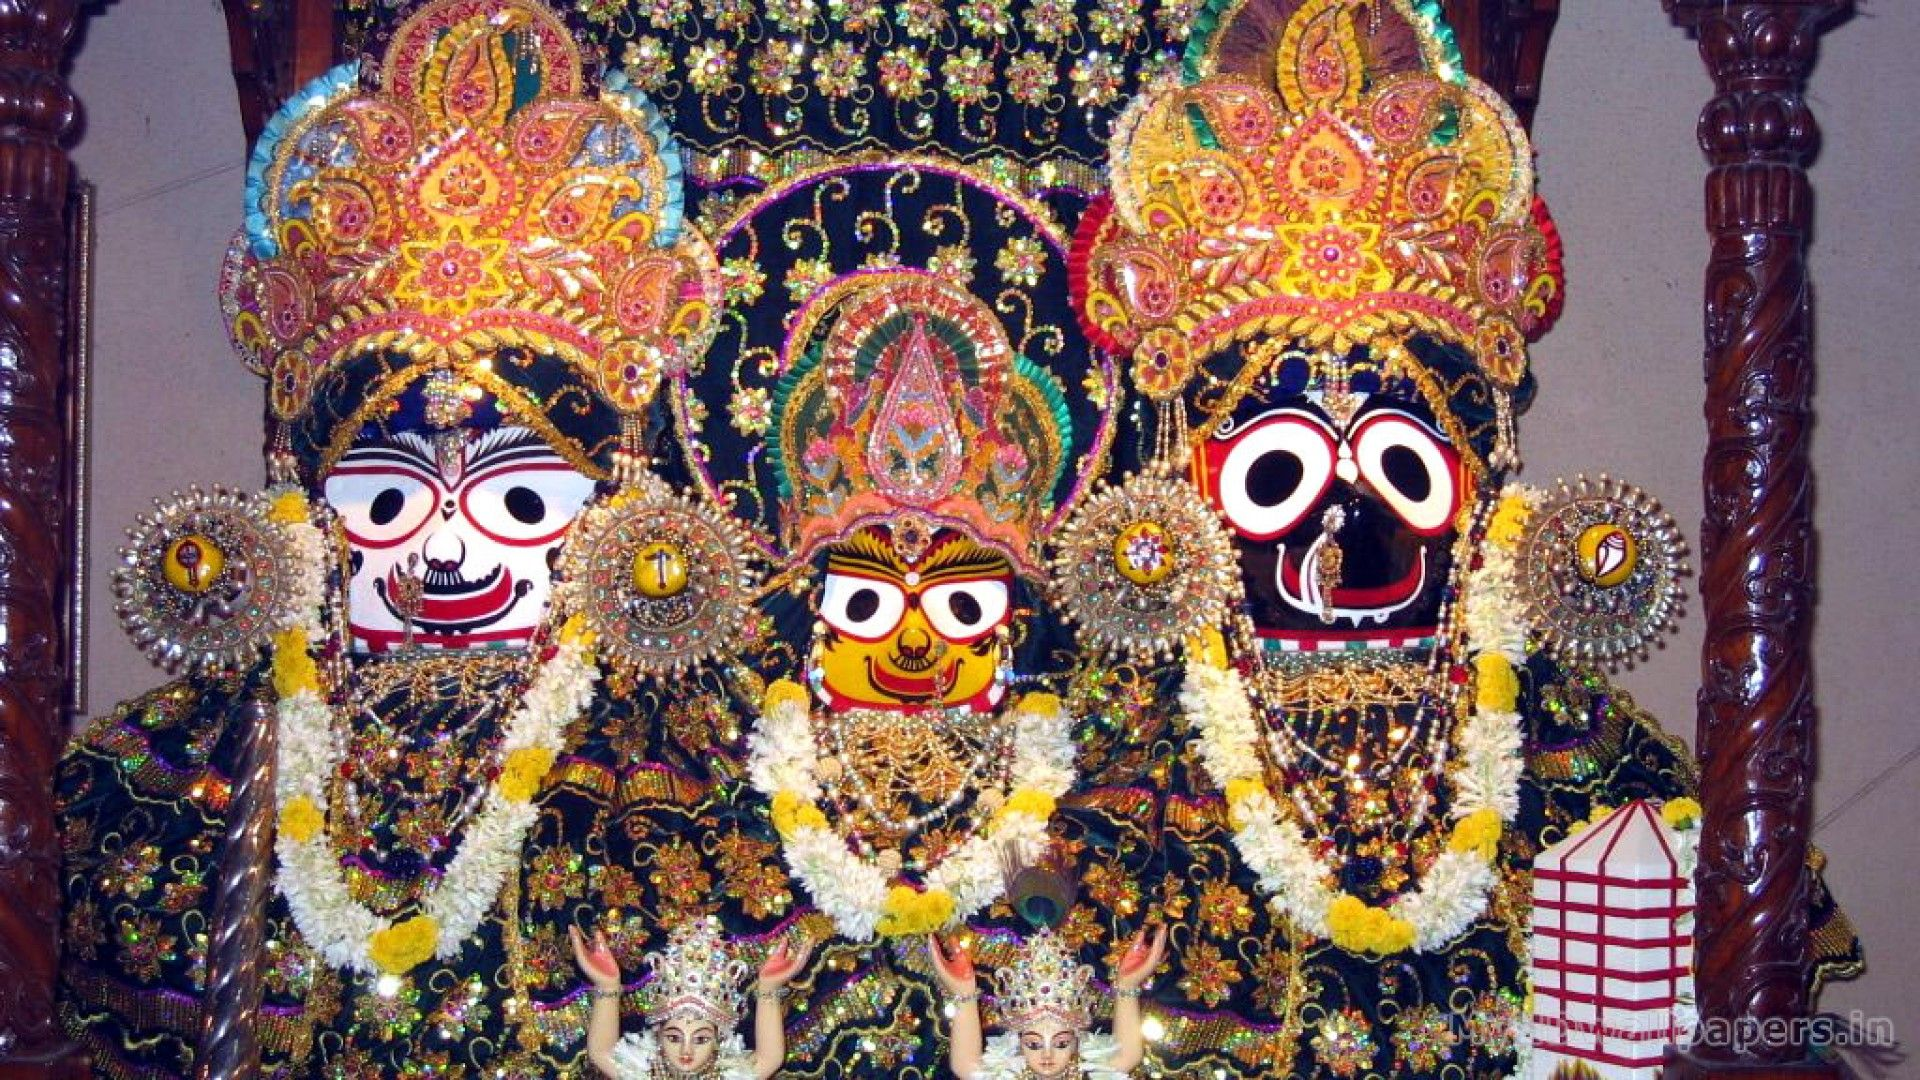 here to in HD Format Lord Jagannath Hd Wallpapers